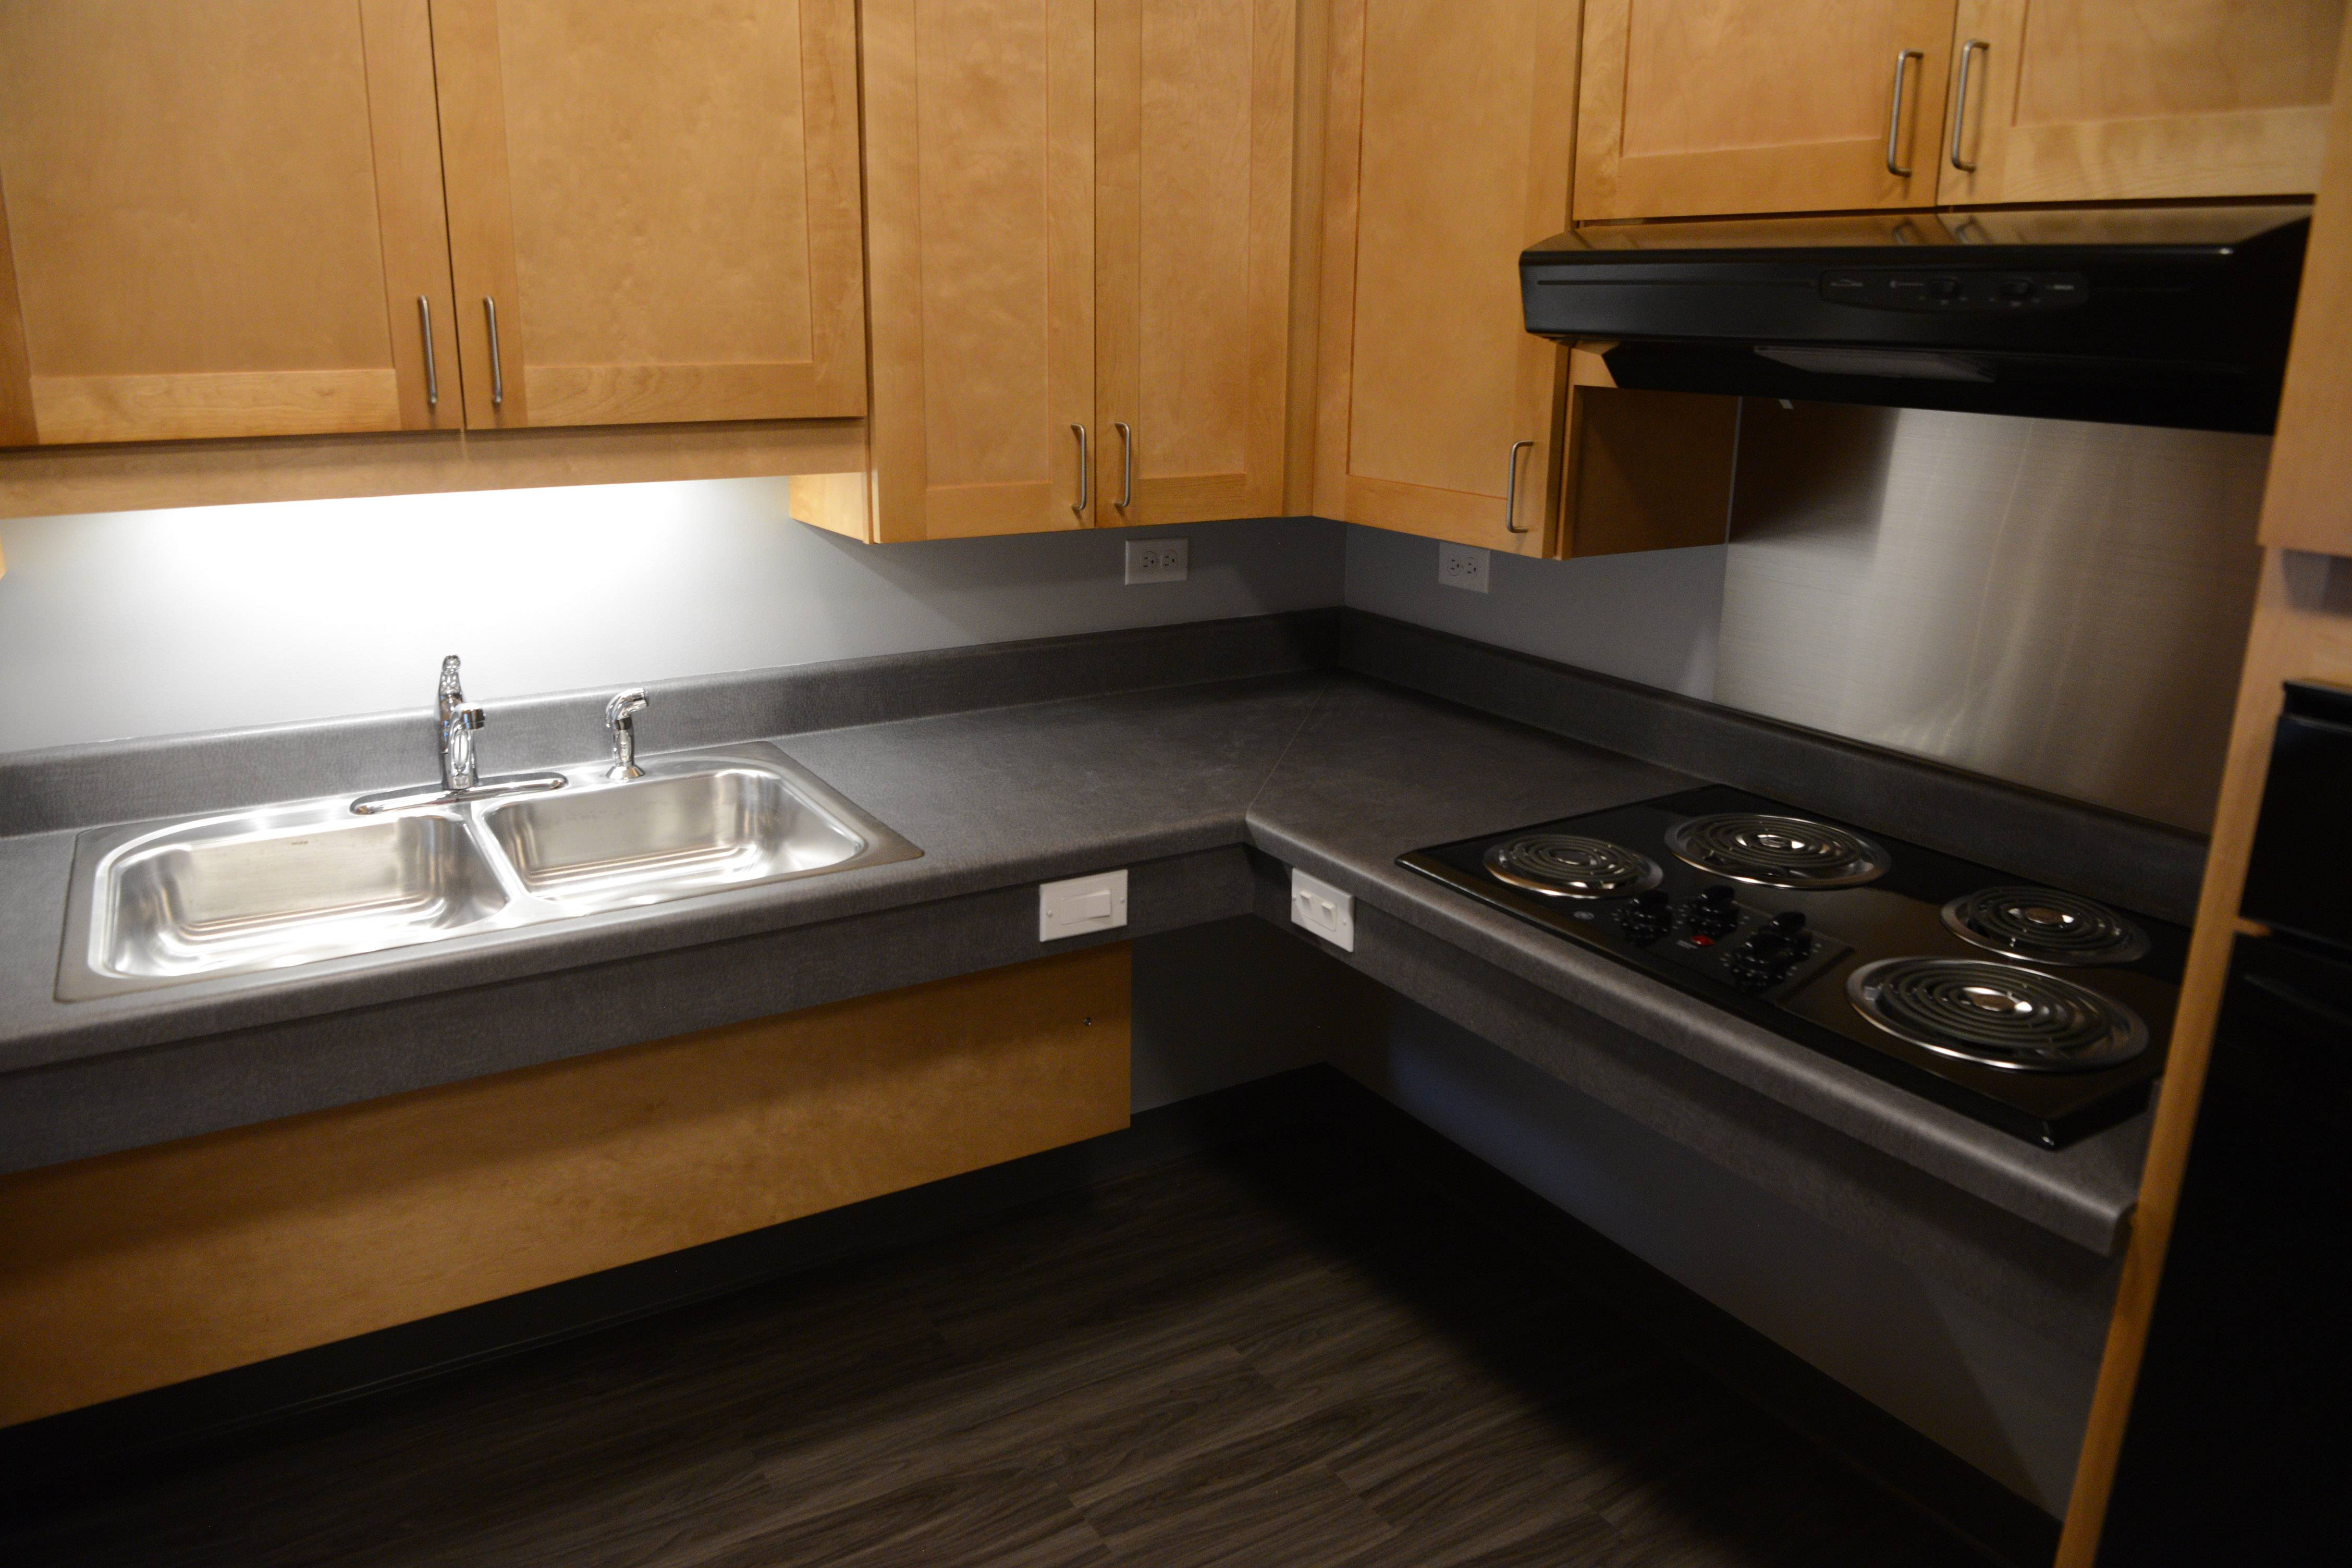 A kitchen of an apartment unit is shown at the Midtown Crossing Apartments on Graceland Avenue in Des Plaines Thursday. Over the Rainbow, an Evanston-based nonprofit, built a four-story, 33-unit apartment building for people with disabilities.